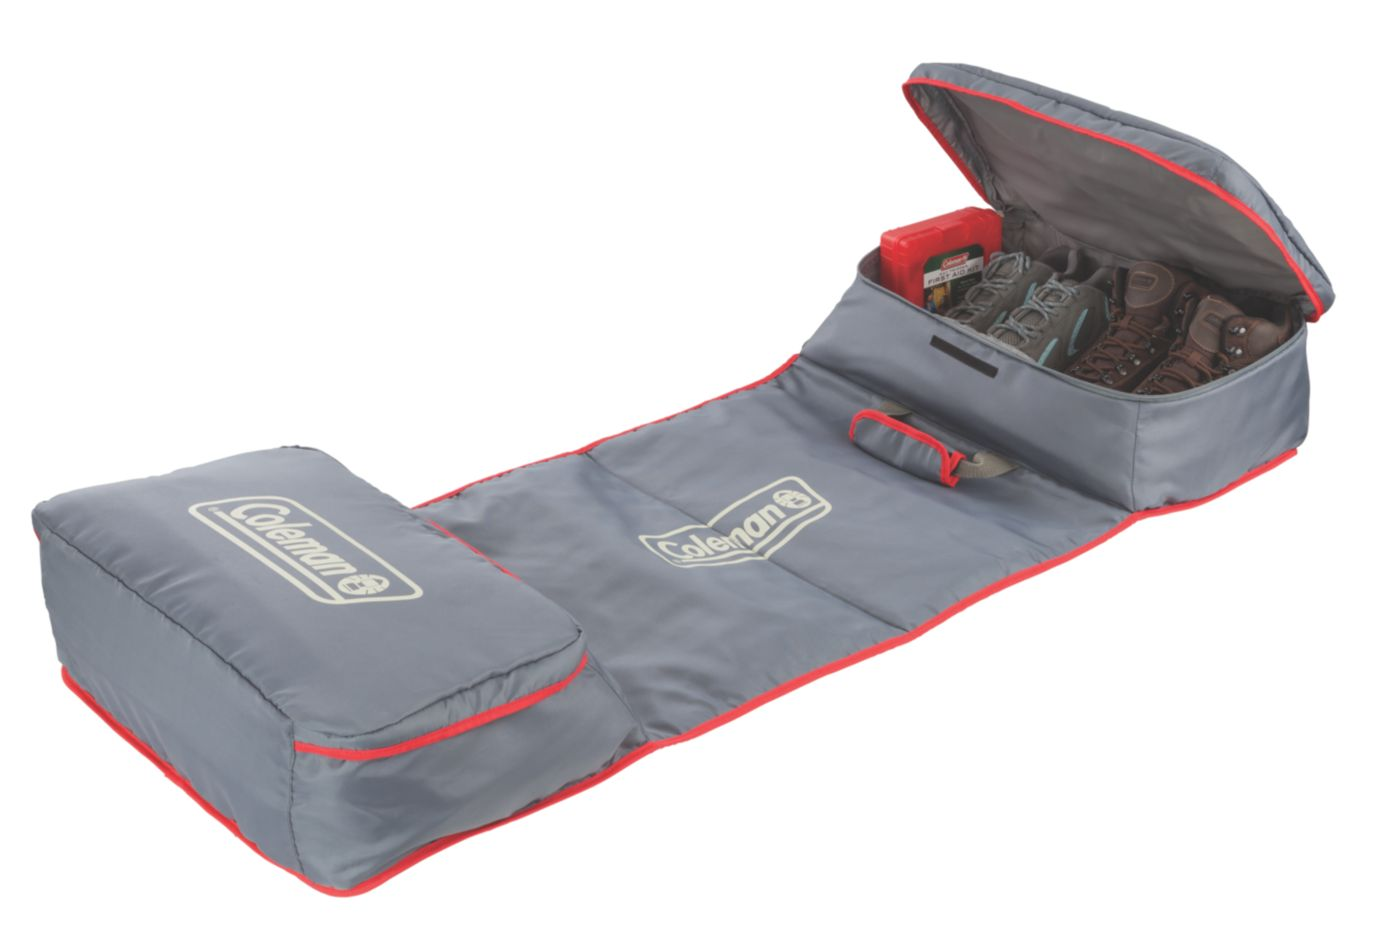 C& Mat Carry All  sc 1 st  Coleman & Tent Accessories | Camping Gear | Coleman